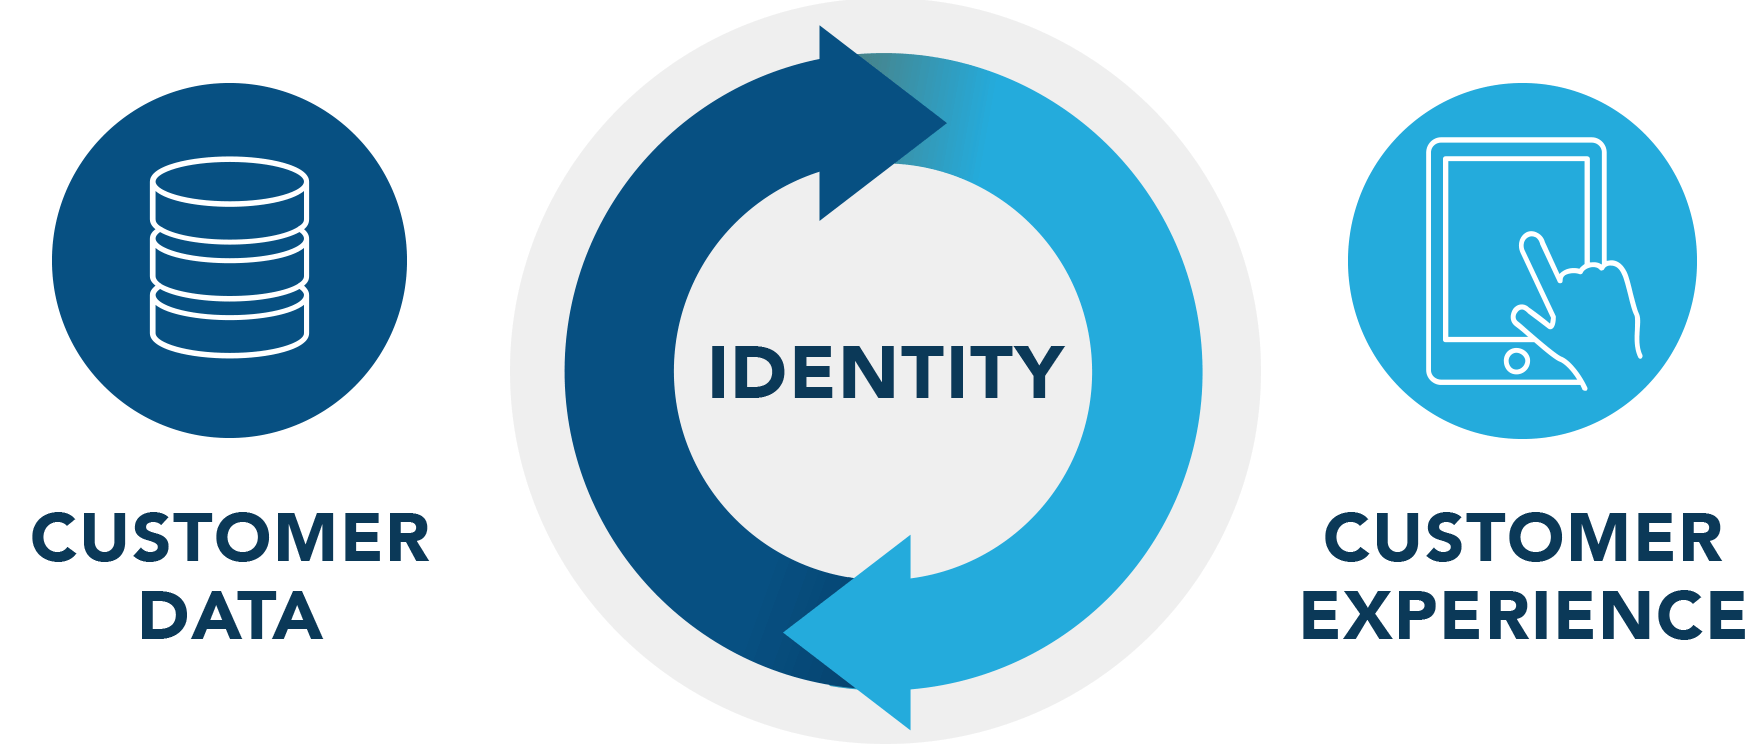 Customer Identity Core